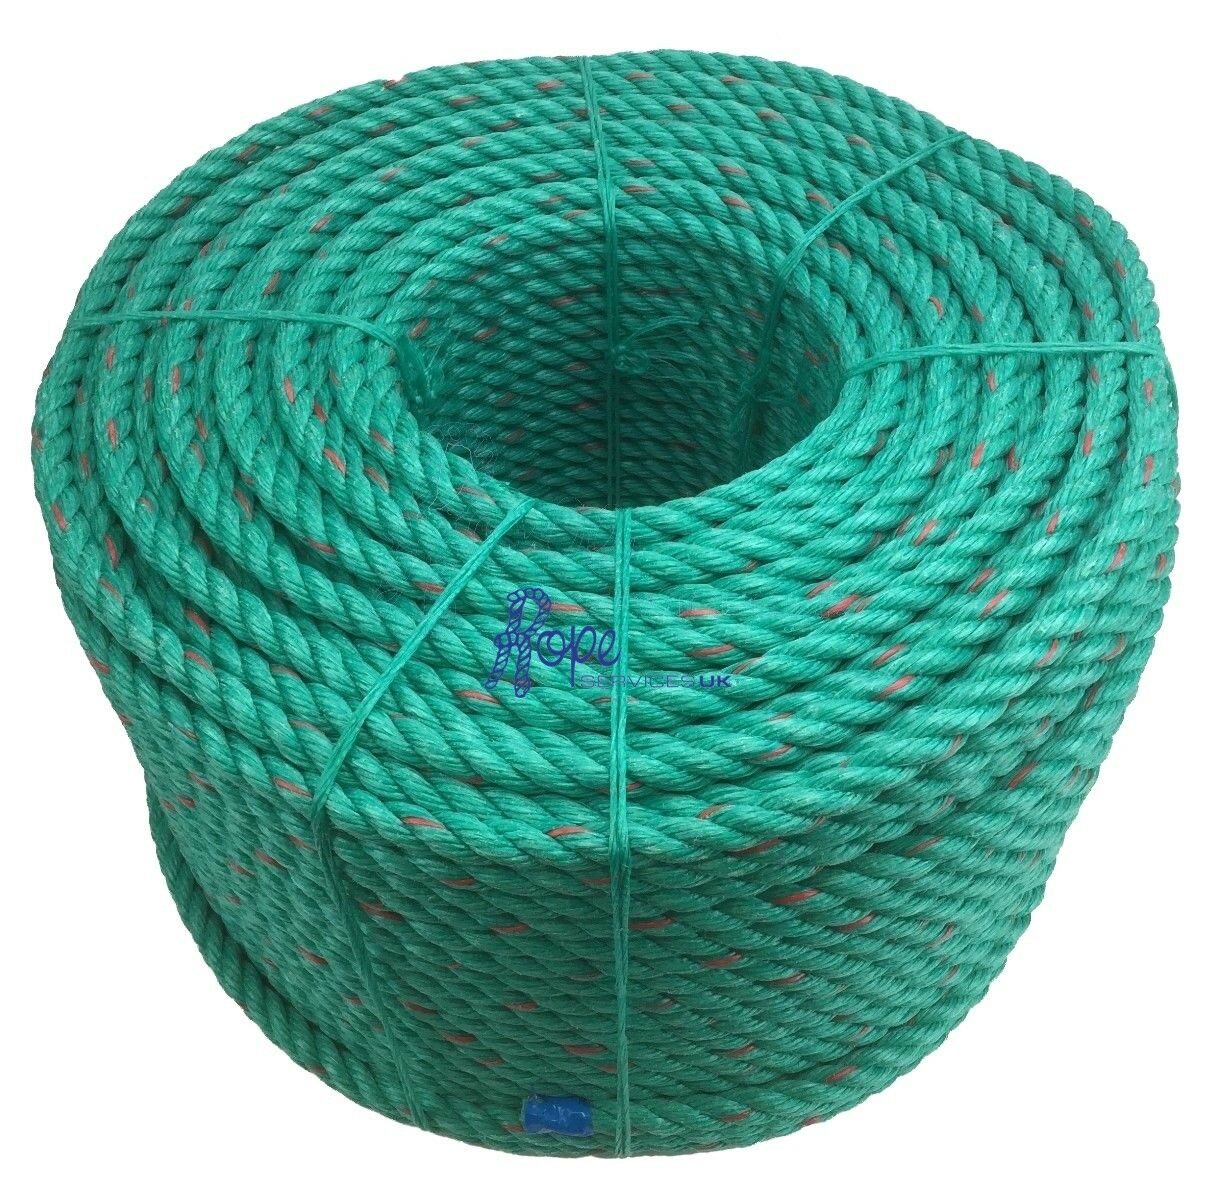 12mm Polysteel Rope x 220 Metres, Lowering, Arborist, Rigging, Tree Surgery Rope